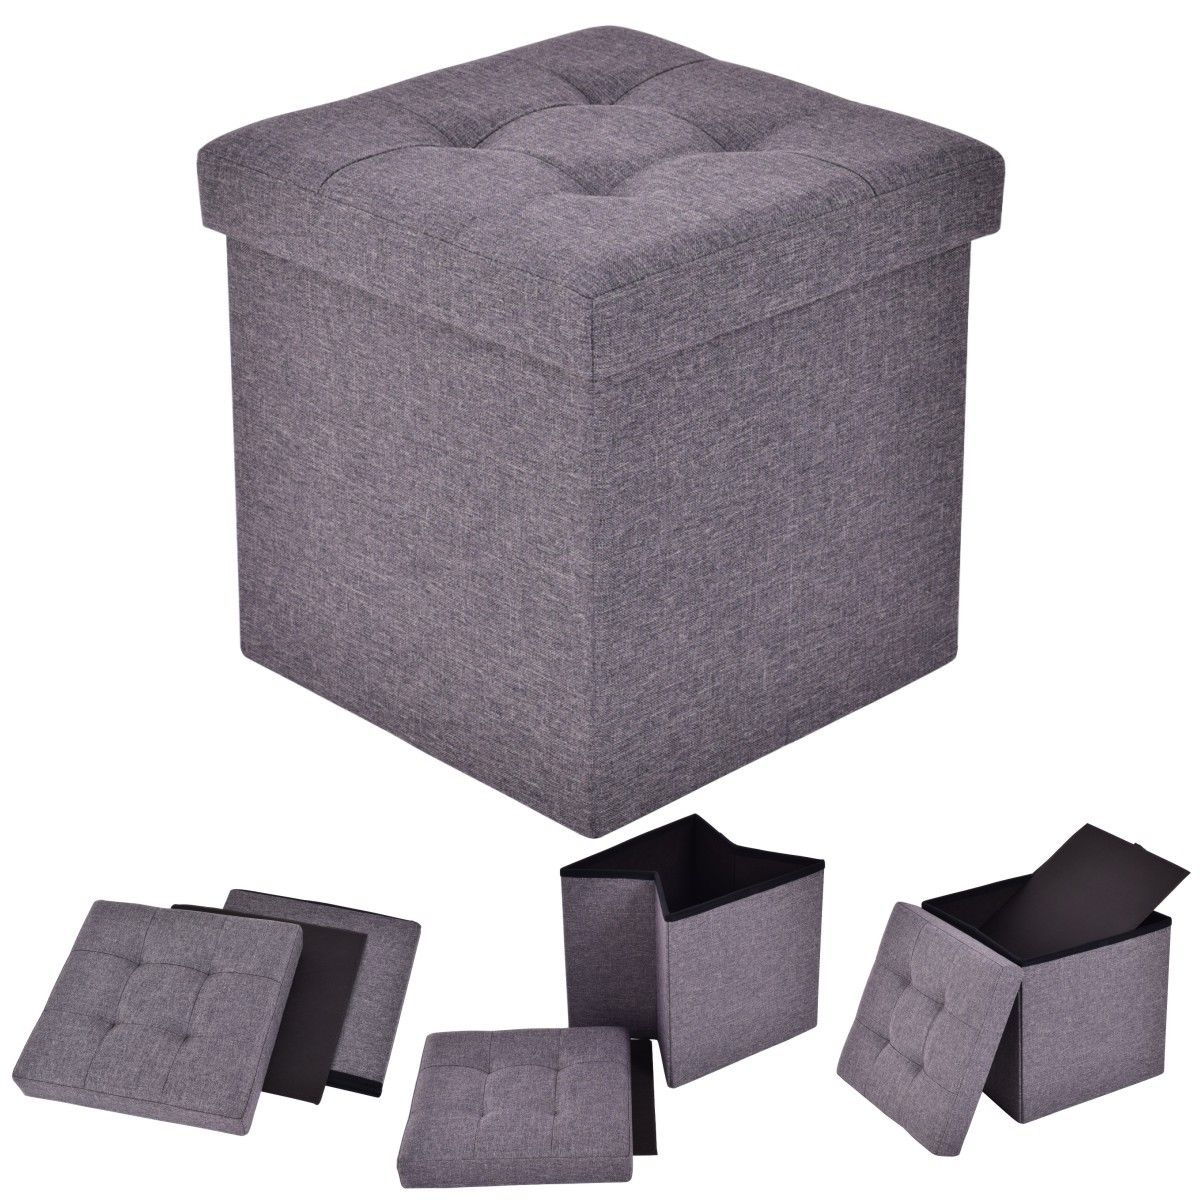 Costway Folding Storage Cube Ottoman Seat Stool Box Footrest Furniture Decor Dark Gray